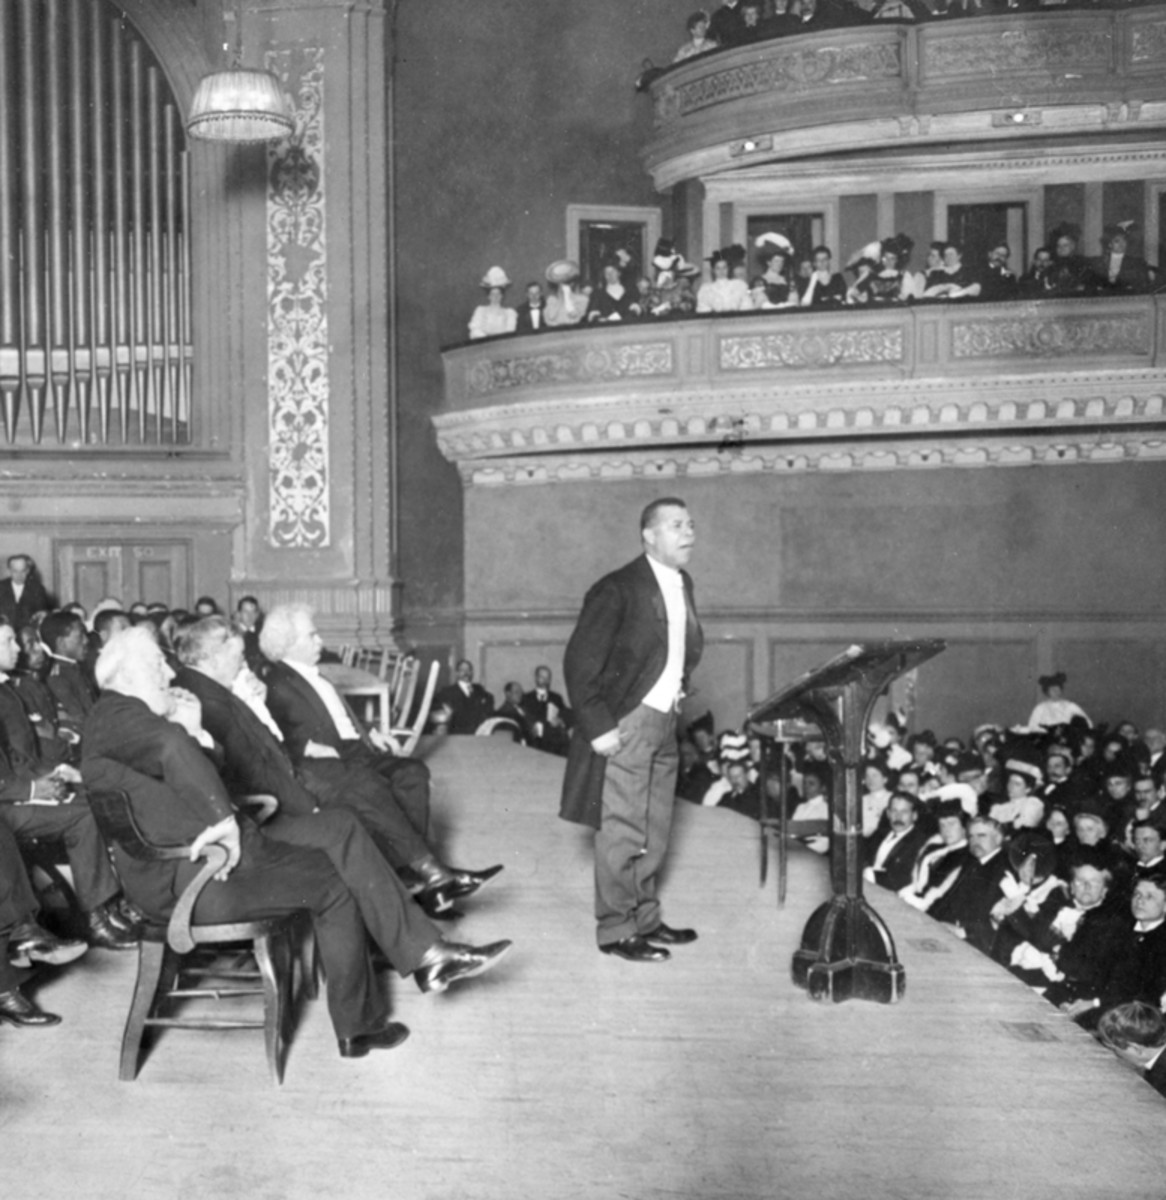 Booker T. Washington speaks at Carnegie Hall in 1906 with Mark Twain behind him listening.